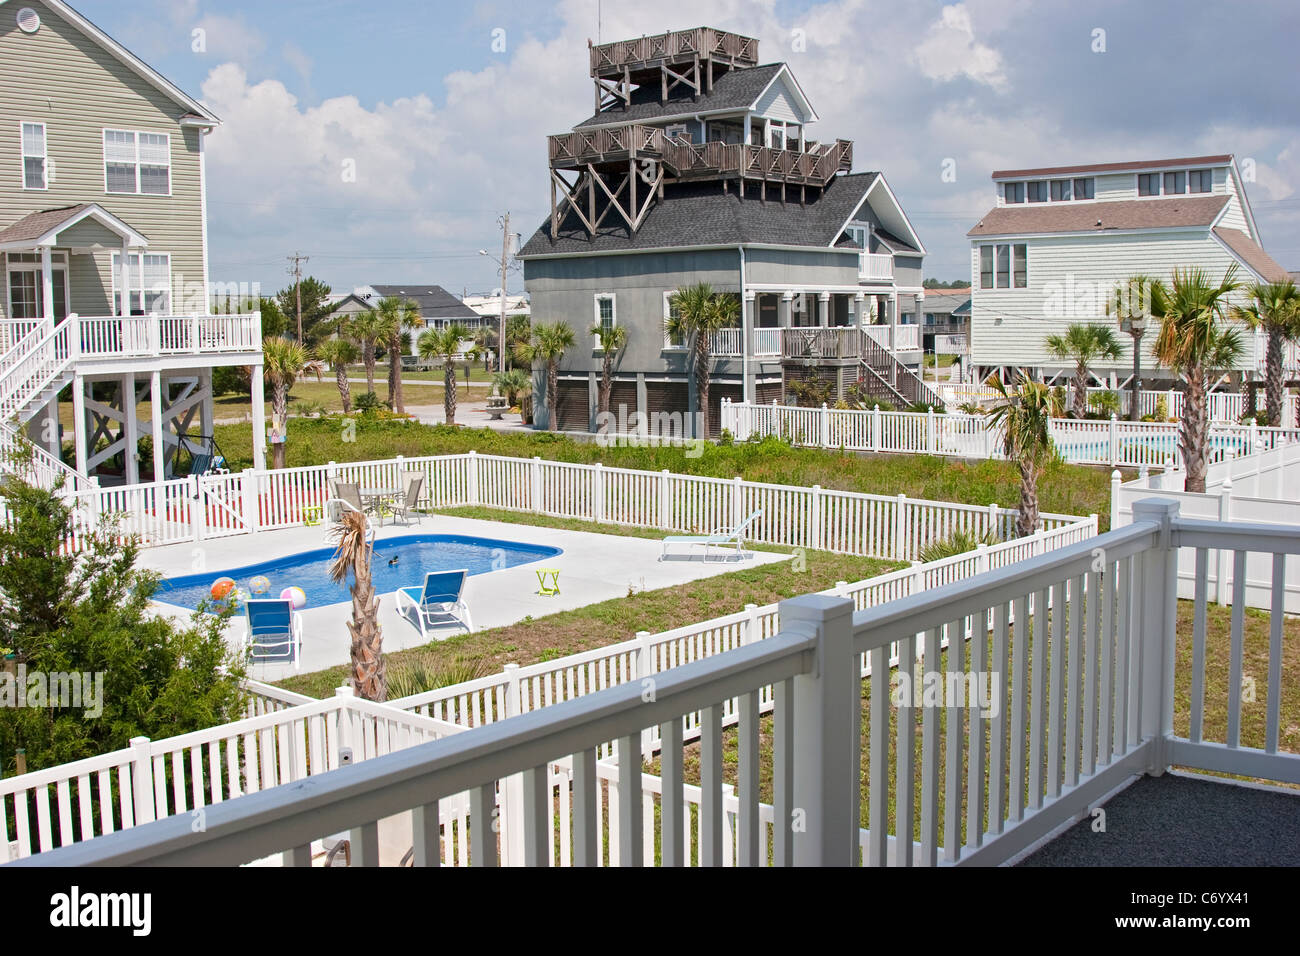 Beach Houses And Swimming Pool, Vacation Rentals, Myrtle Beach, South  Carolina, USA